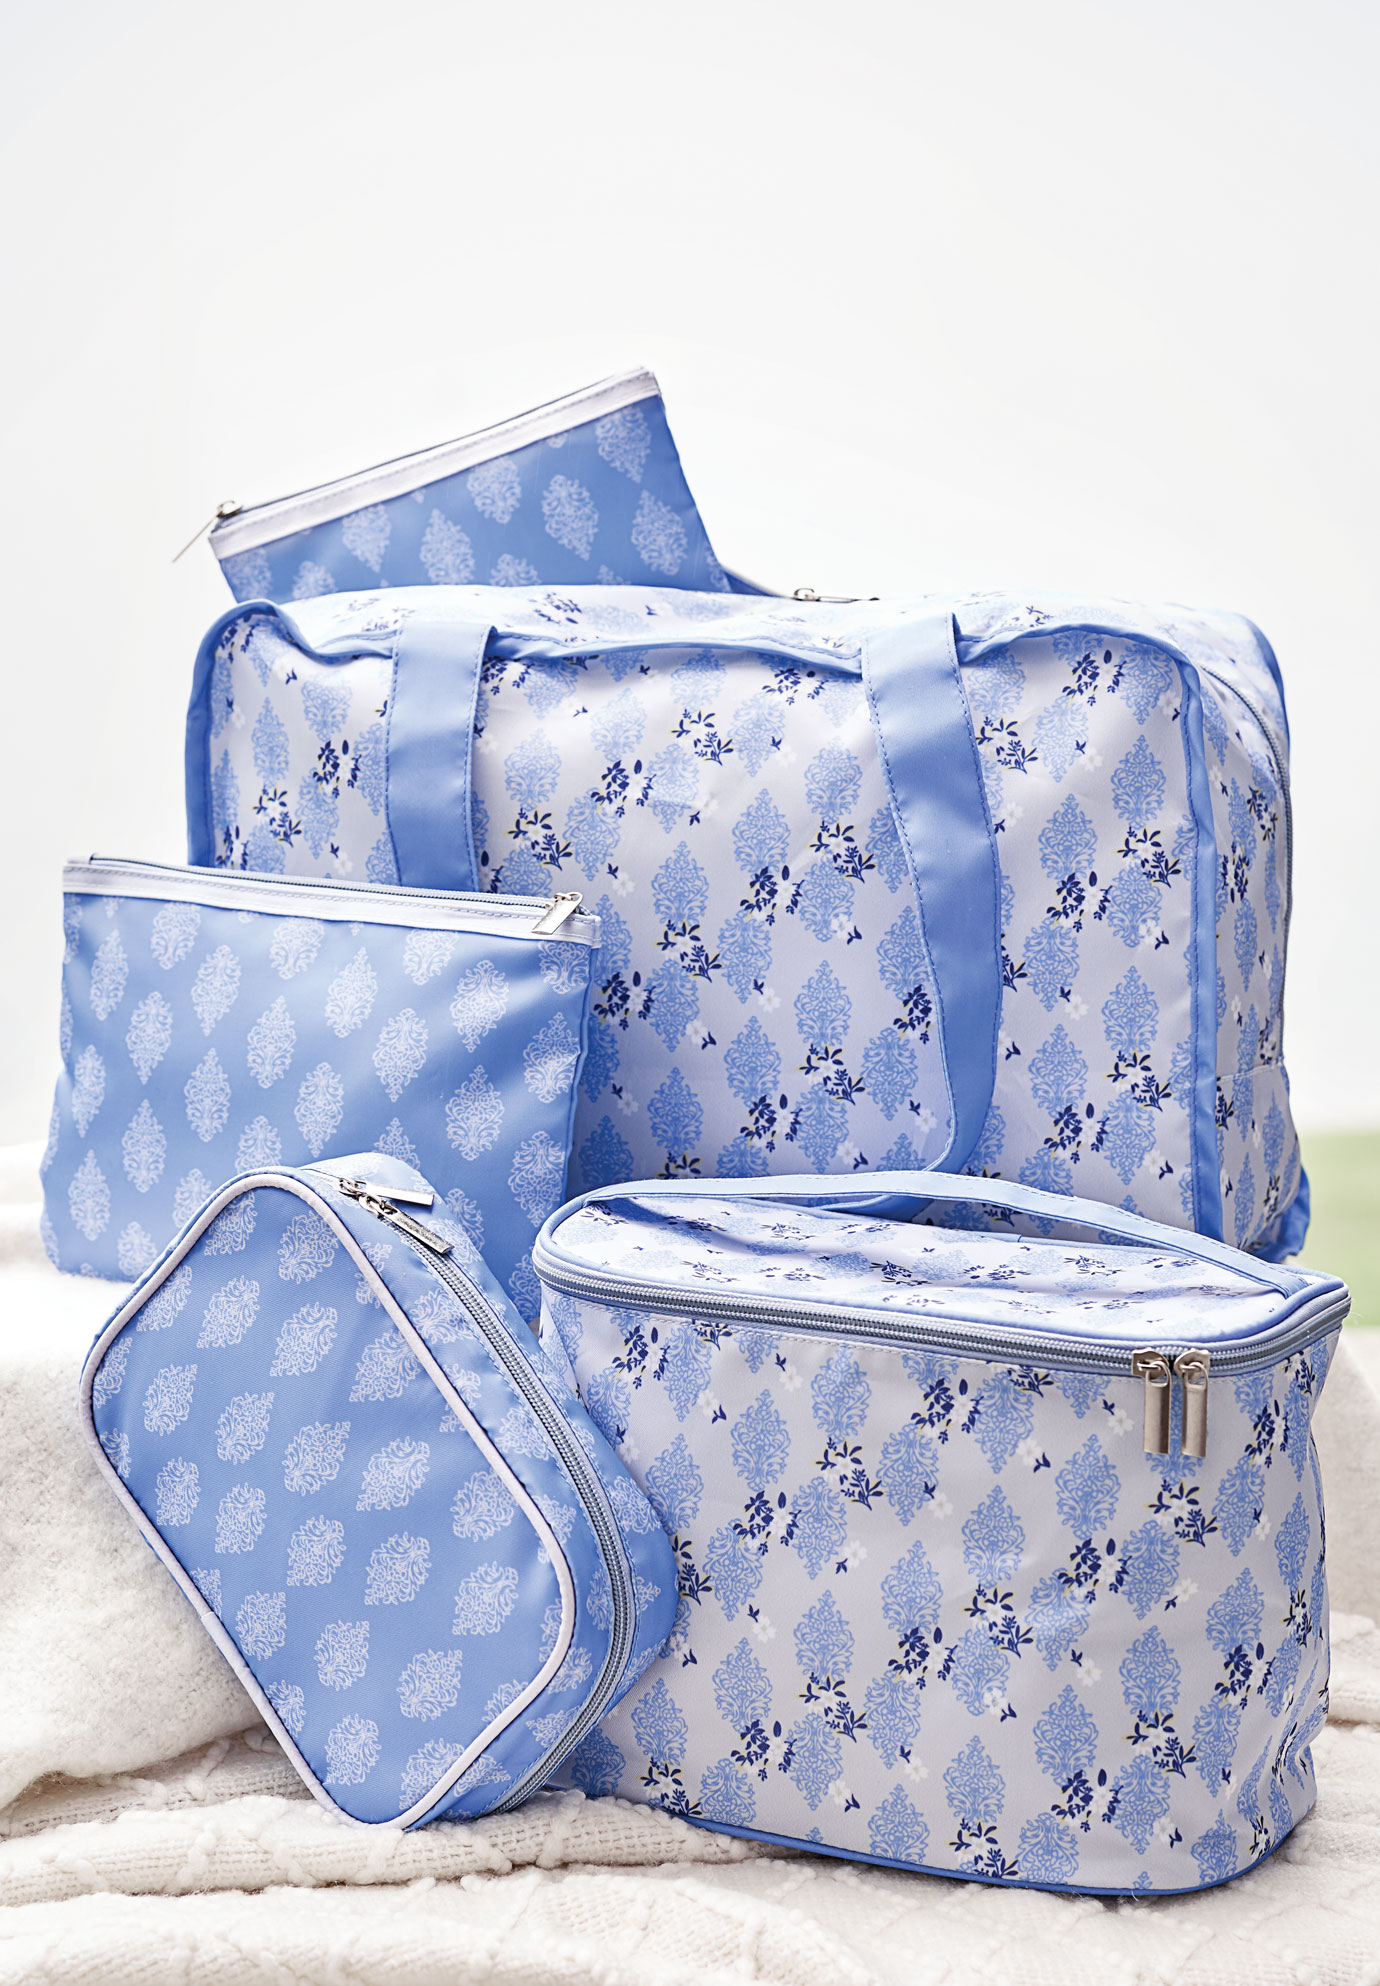 5-Piece Accessory Bag Set, BLUEBERRY CREAM FLORAL PRINT